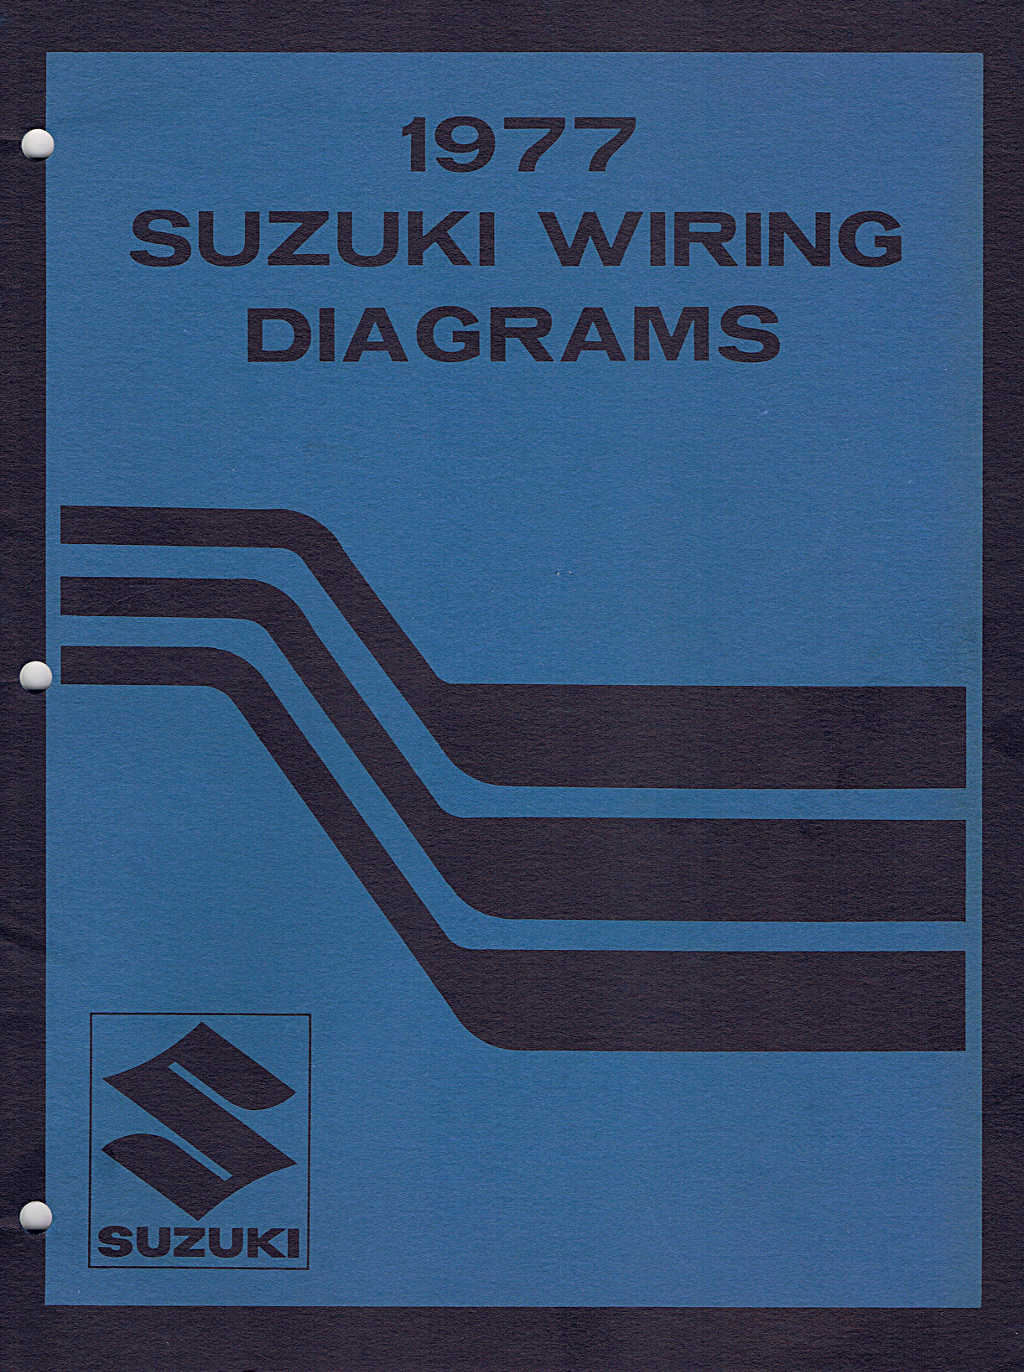 Suzuki Electrical Diagrams 2007 Xl7 Fuse Diagram Forum This Is A Selection Of Wiring That I Have Gathered Together In One Location Just For Ease Reference Dont Sell Them Nor Do Supply